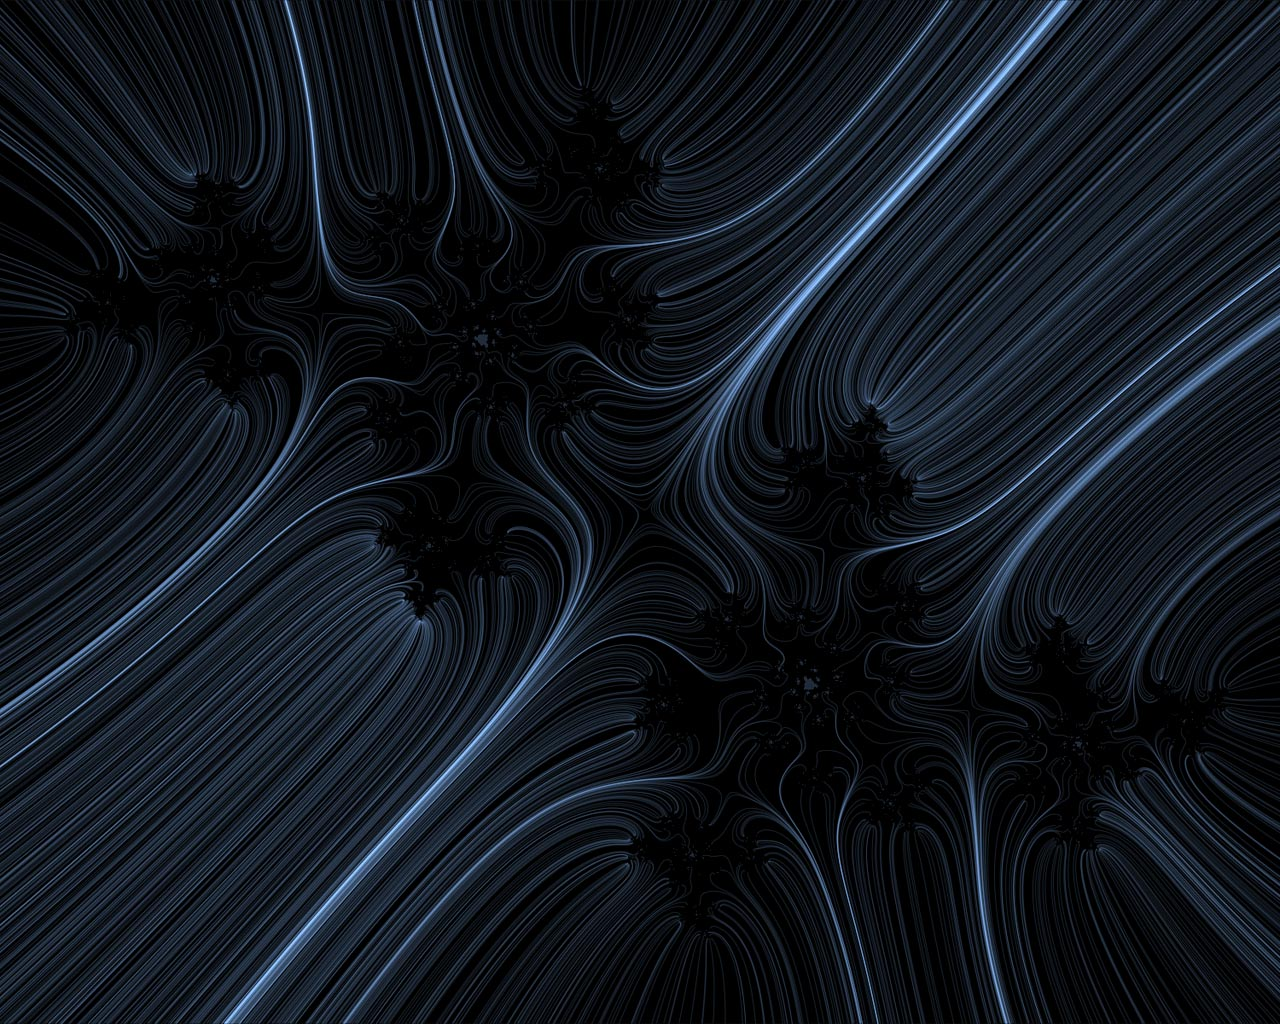 Fractal Black and White Abstract Backgrounds